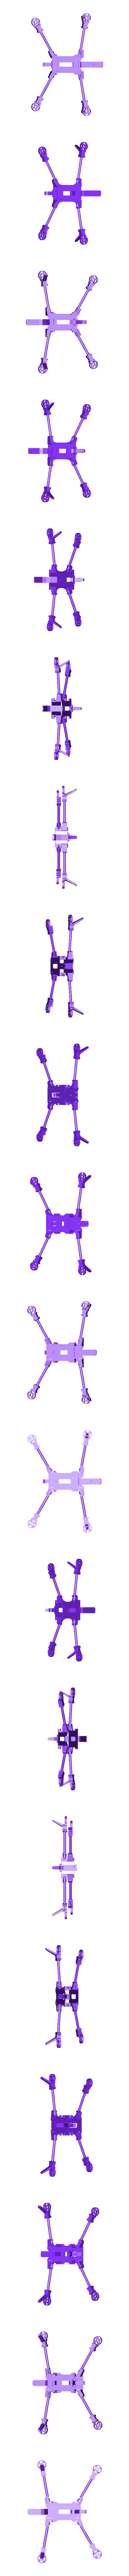 Voltus_Open.stl Download free STL file Voltus Folding Drone • 3D printable design, mwilmars